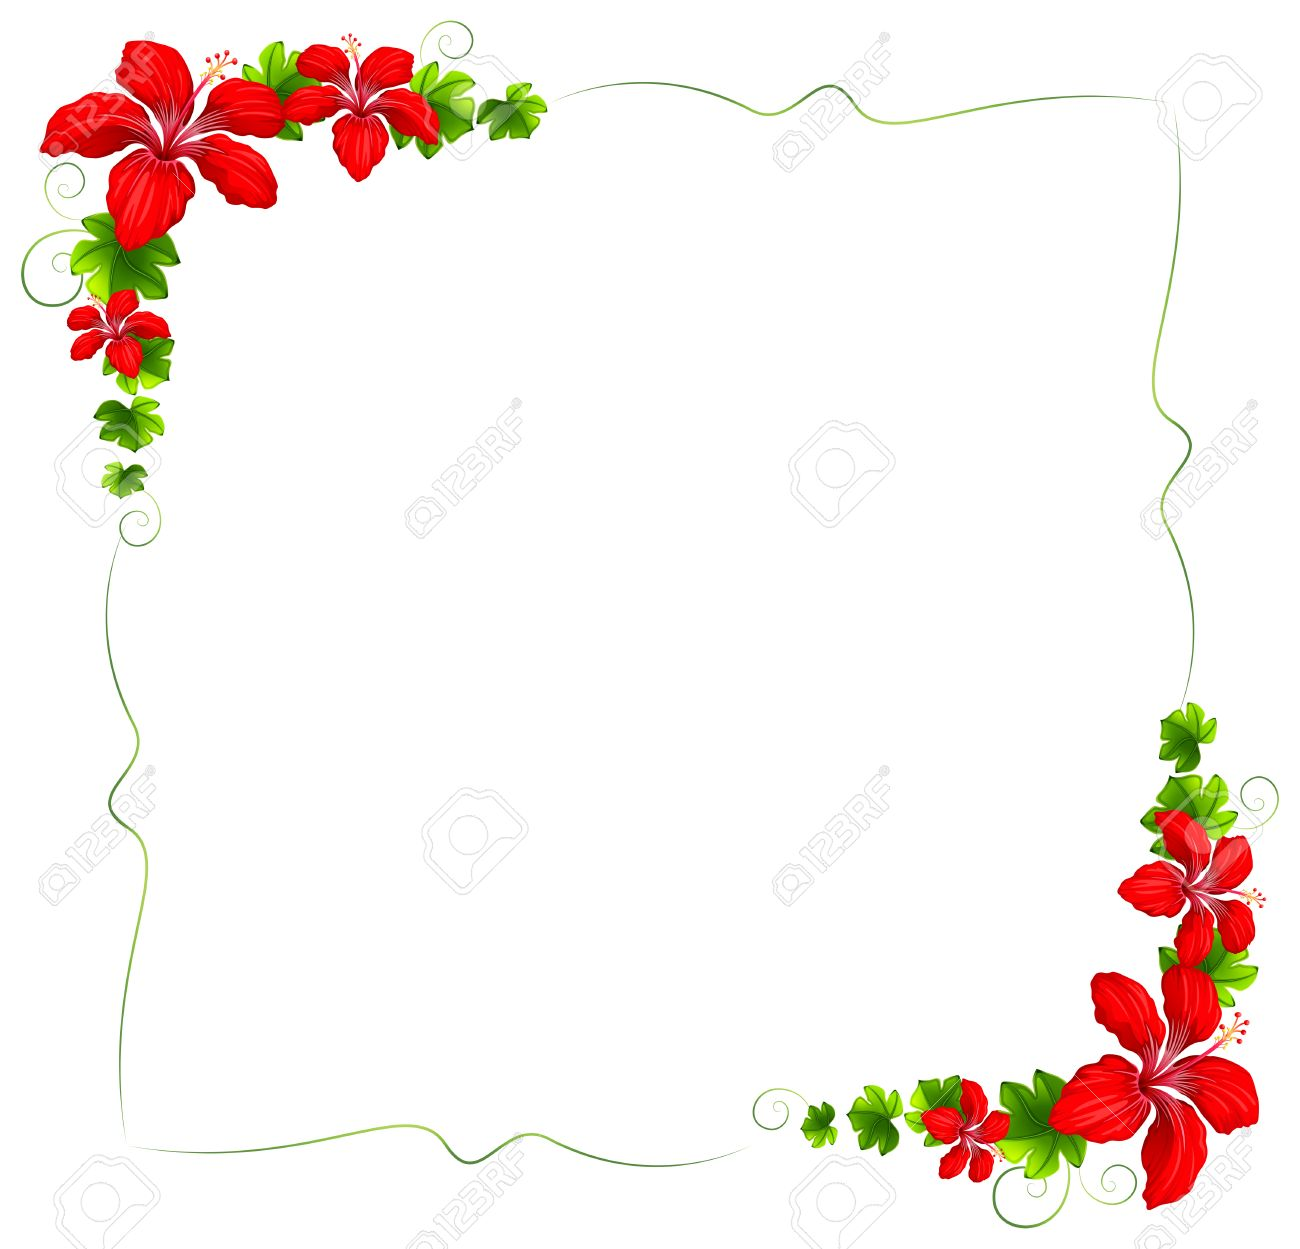 illustration of a floral border with red flowers on a white